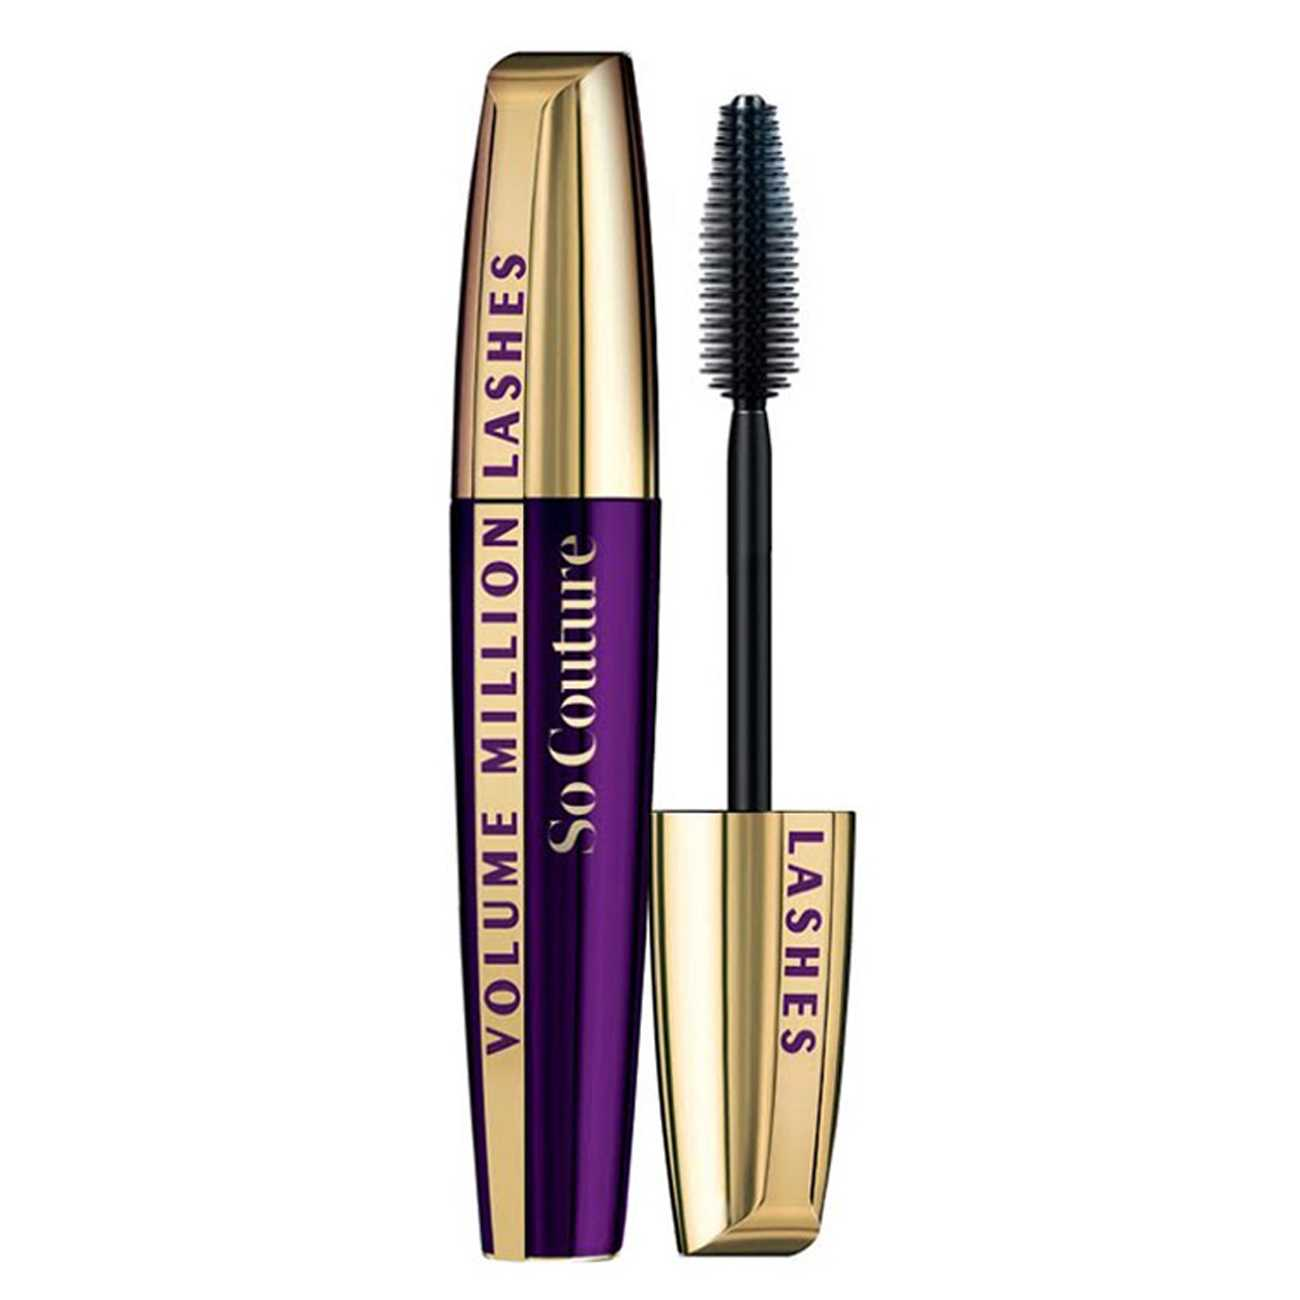 VOLUME MILLION LASHES SO COUTURE 10 ML imagine produs